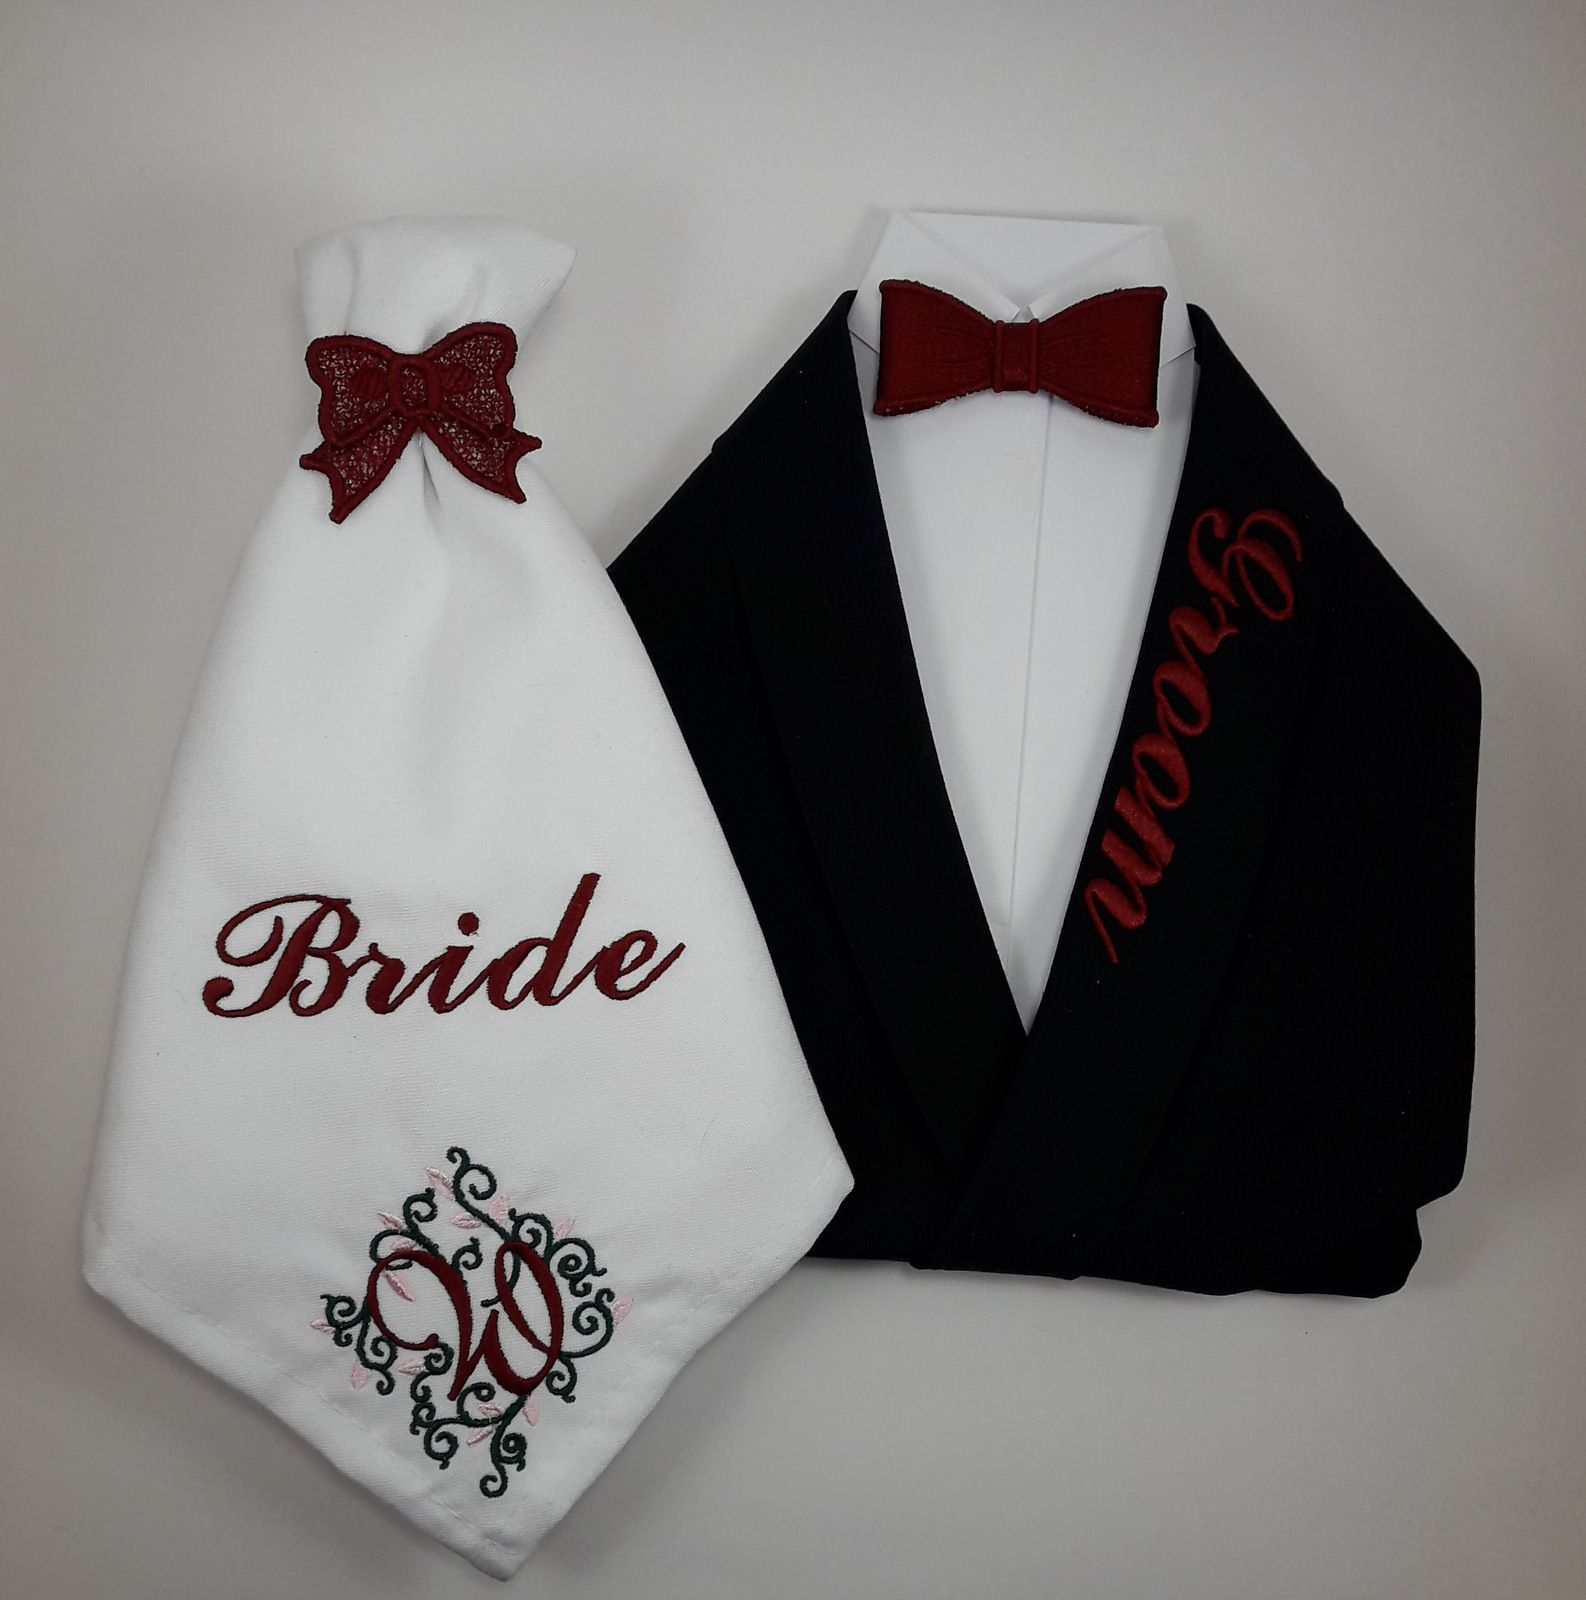 Wedding Gift Table Ideas: Wedding Bride And Groom Custom Napkins, Reception Table